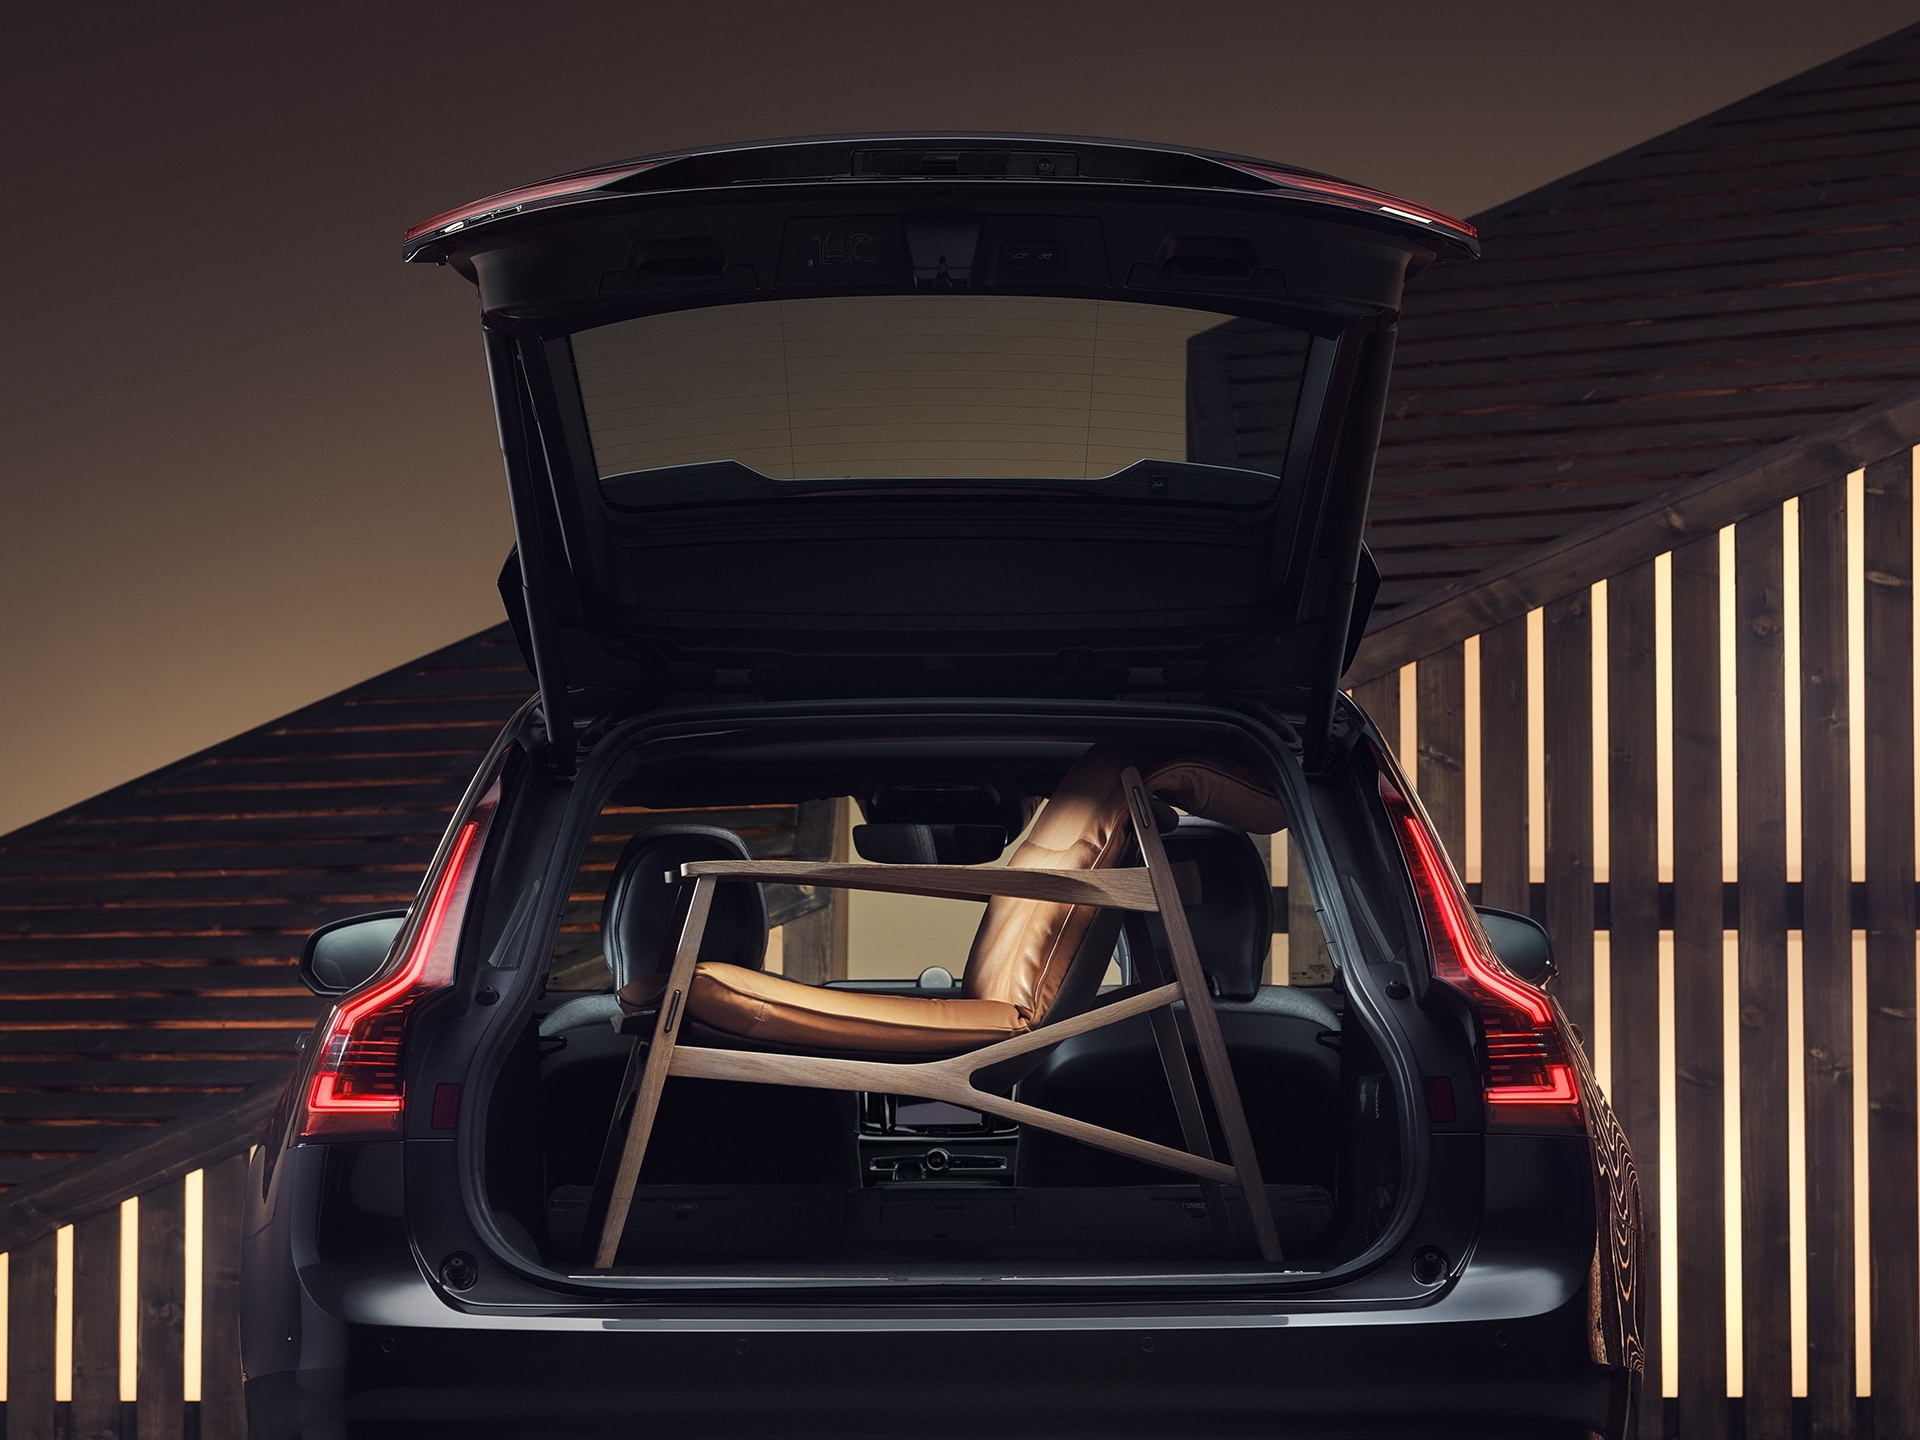 The boot space of a Volvo V90, filled up by a brown elegant armchair